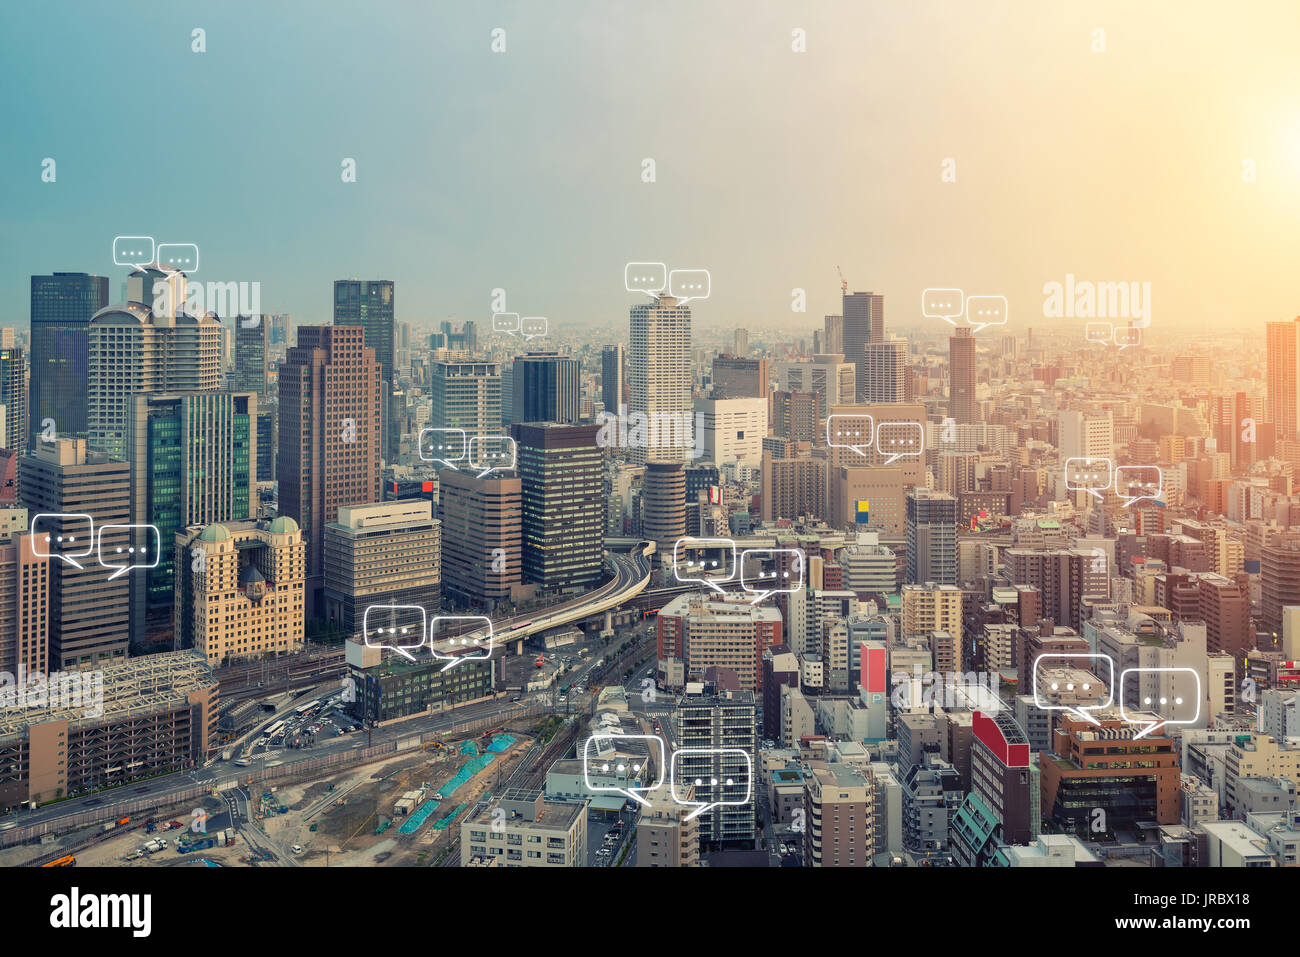 Blank space for text on Osaka city and bubble chat for communication. Technology and communication concept. Internet of thing. - Stock Image